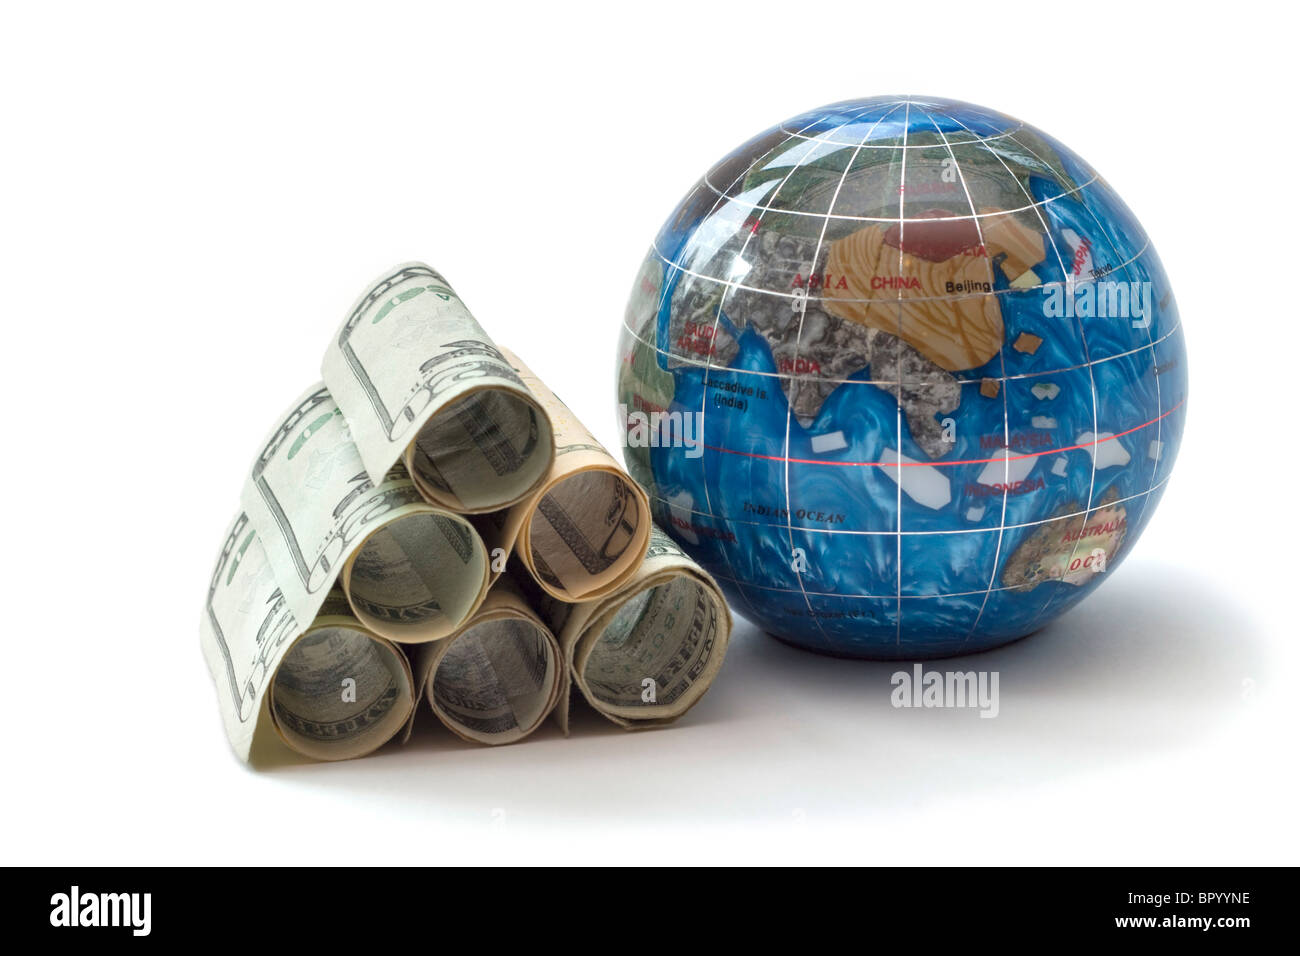 Global economics represented by a pile of rolled dollars stacked beside a small globe - Stock Image